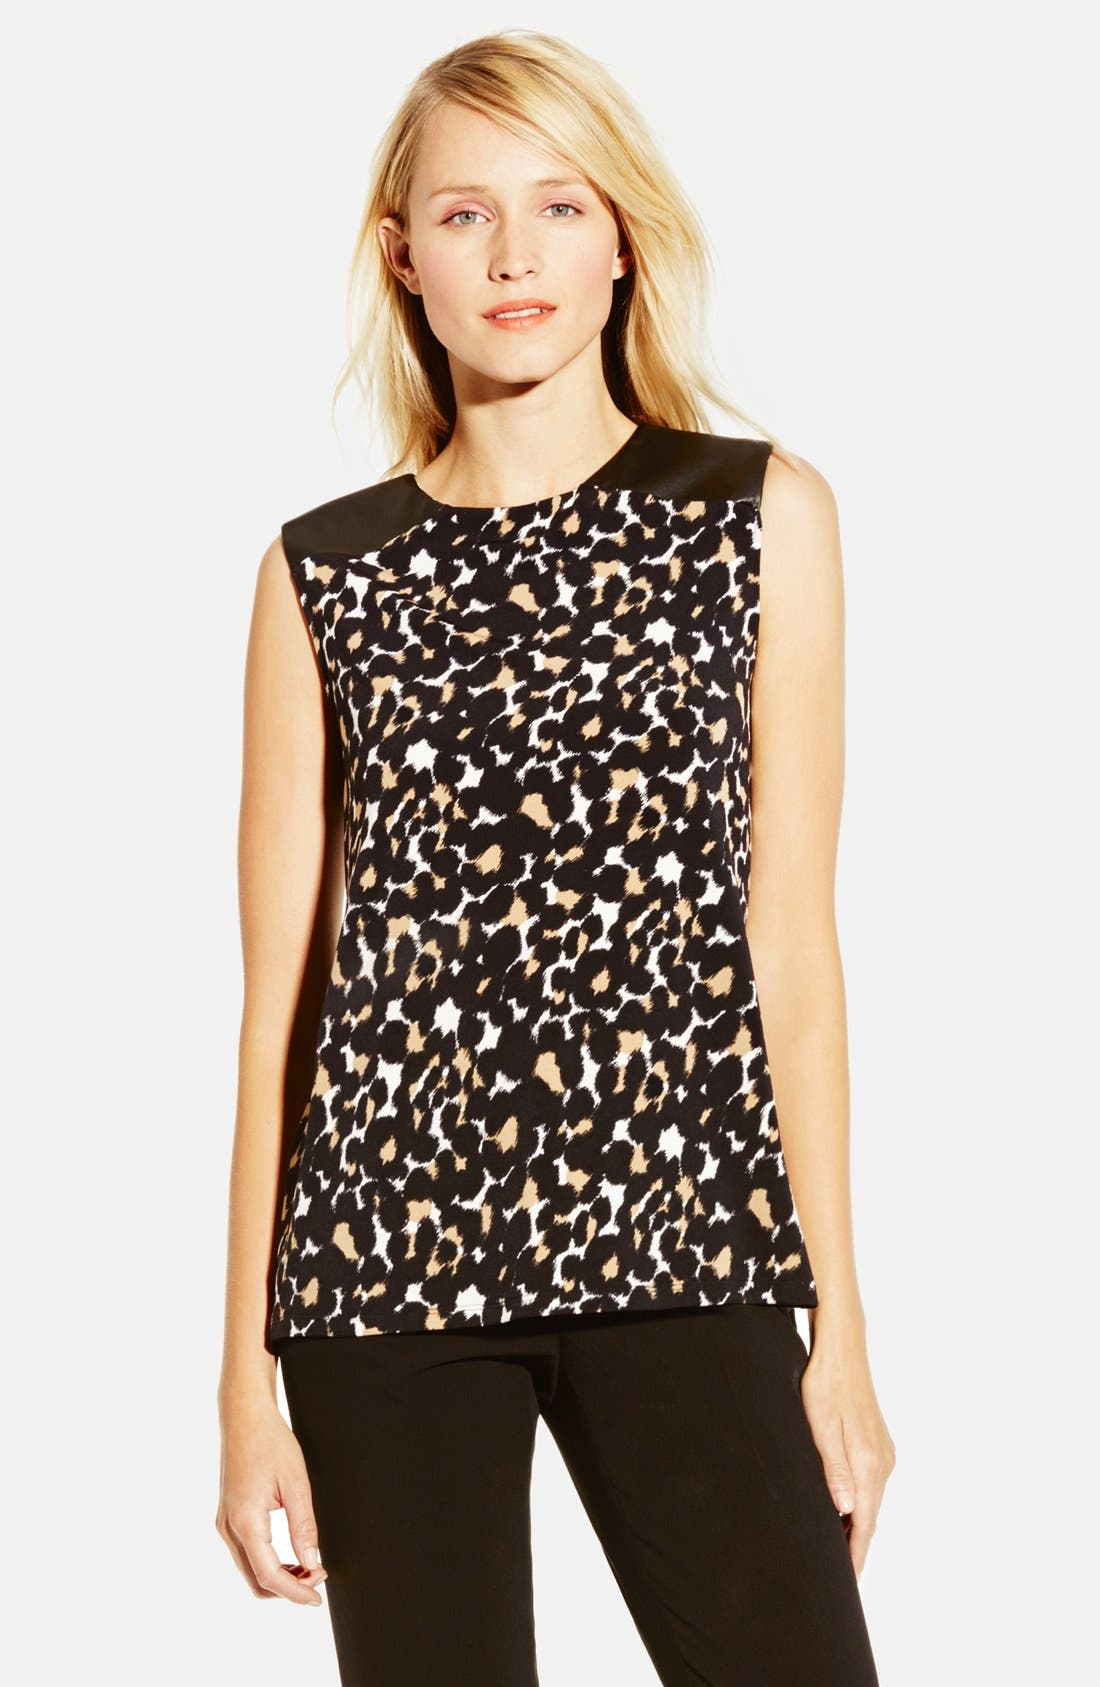 Main Image - Vince Camuto Faux Leather Trim Print High/Low Top